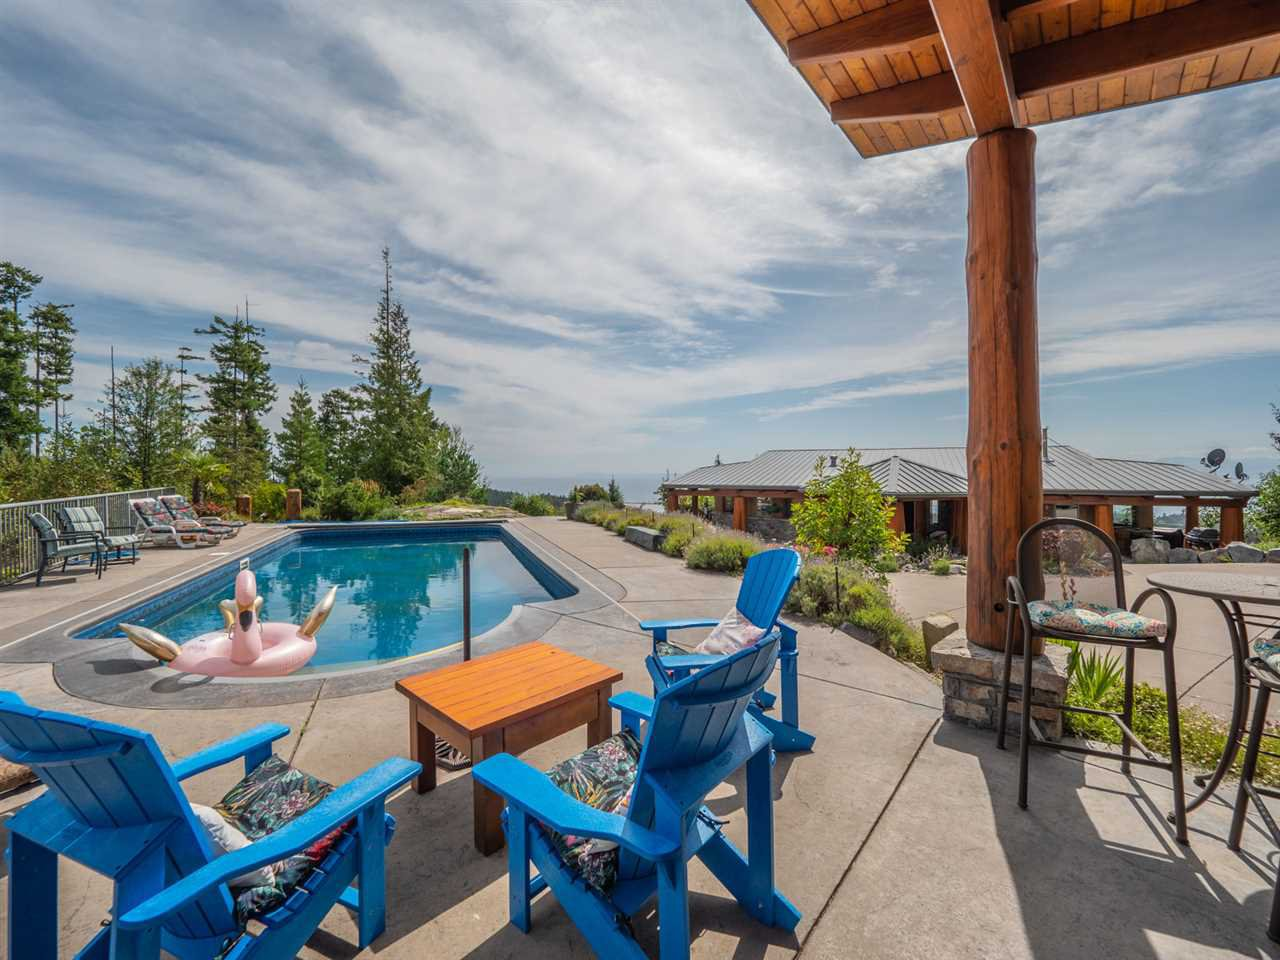 This property is stunning from the outdoor salt water pool to the entertainment cabana, to the cedar timberframe 2 level home to the amazing 600 sq ft shop with its own deck and ocean view!